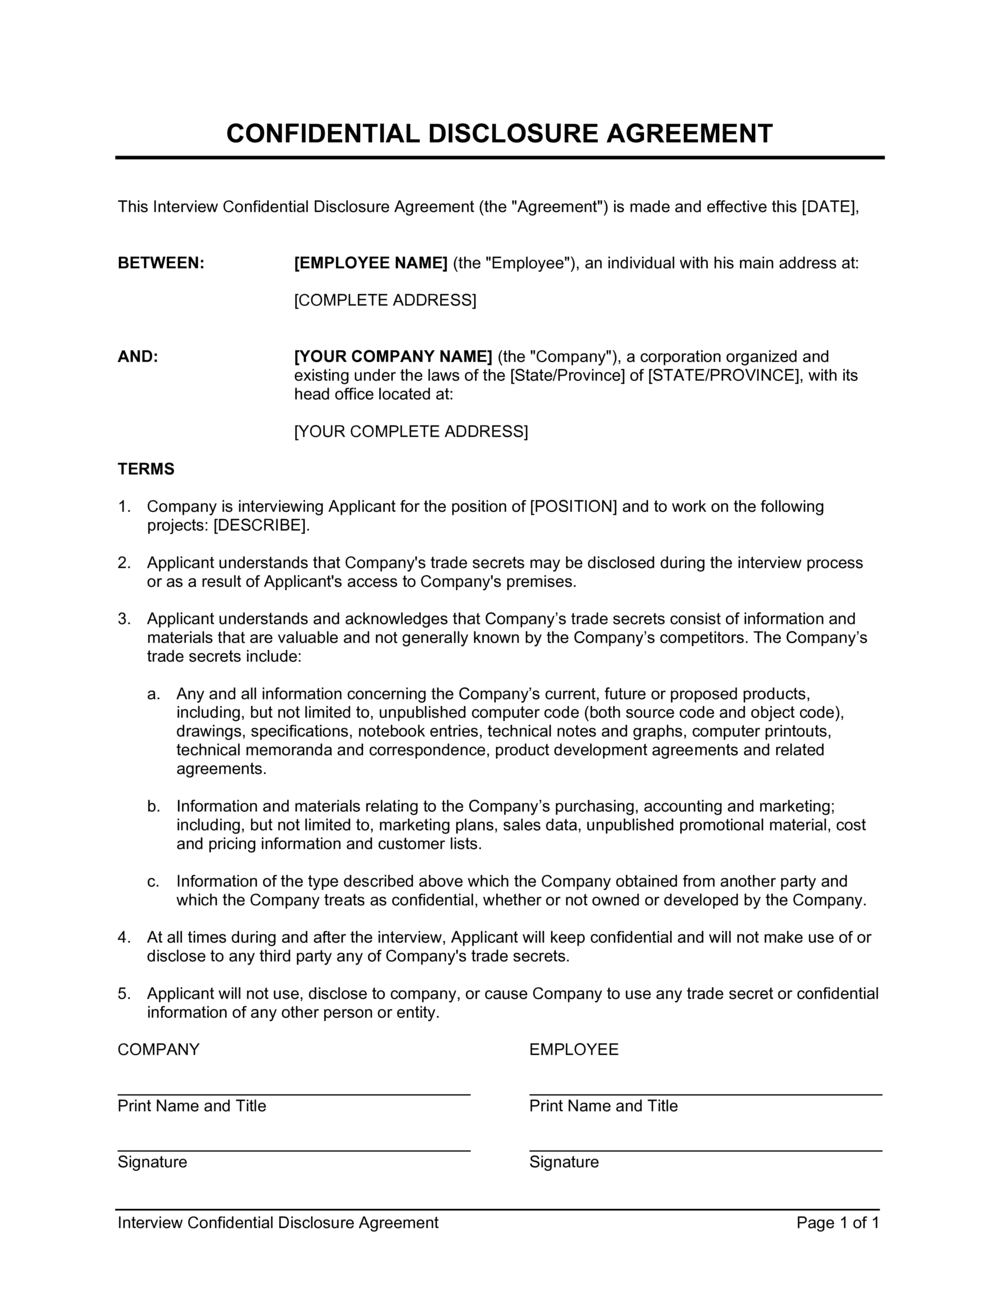 Business-in-a-Box's Interview Confidential Disclosure Agreement Template